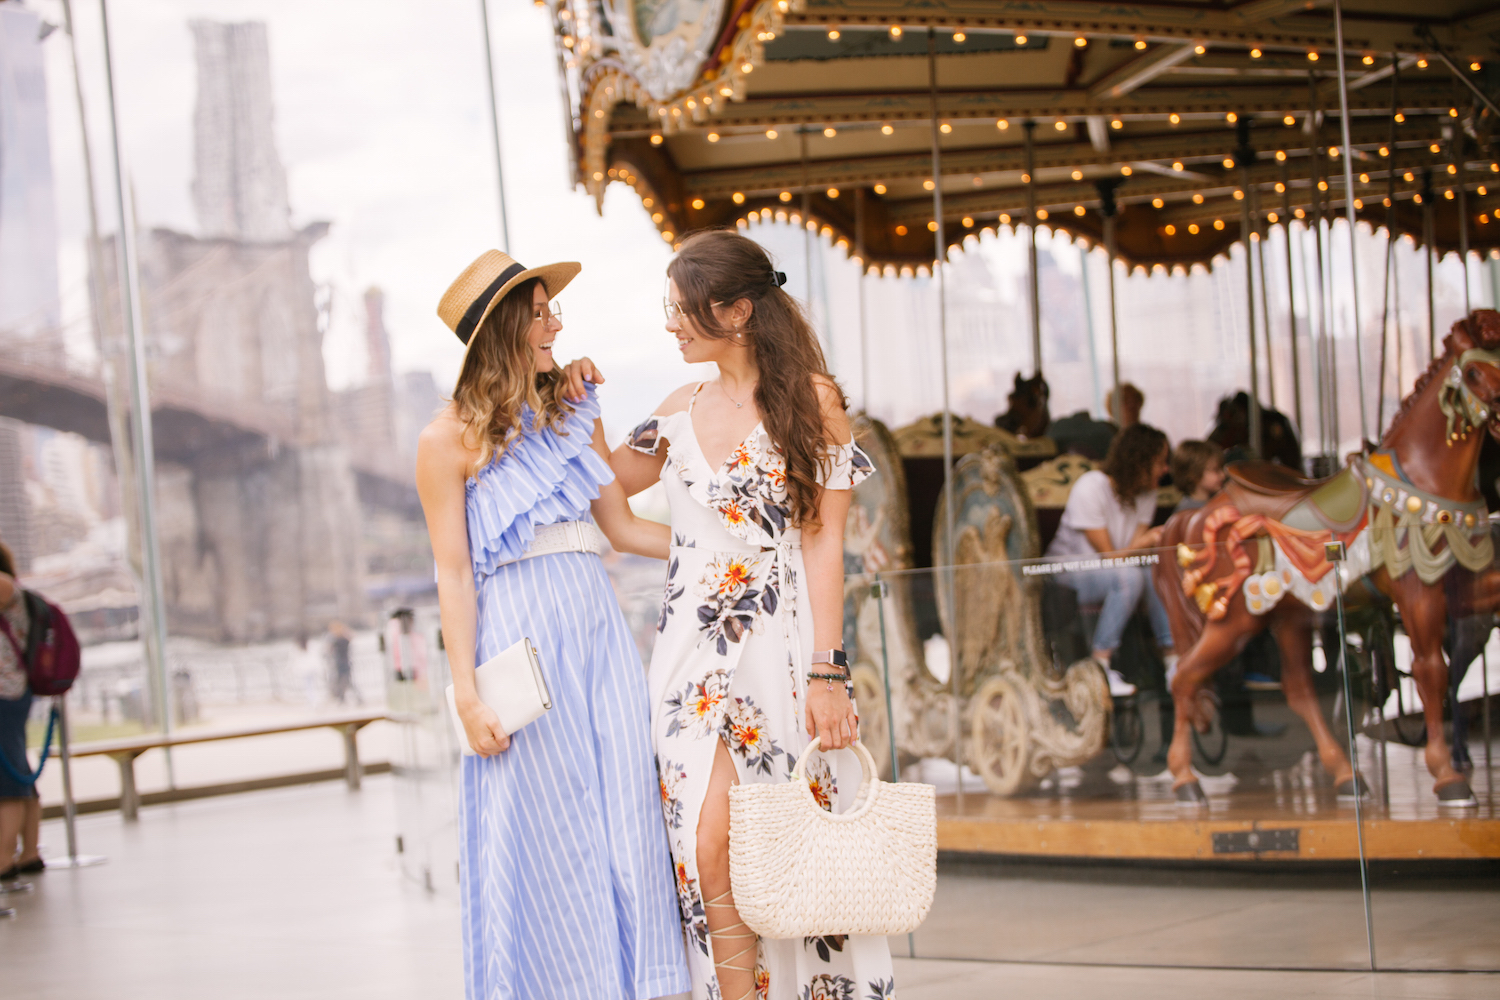 shein-collaboration-allbuenothings-sheinside-summer-dresses-nyc-blogger-streetstyle-new-york